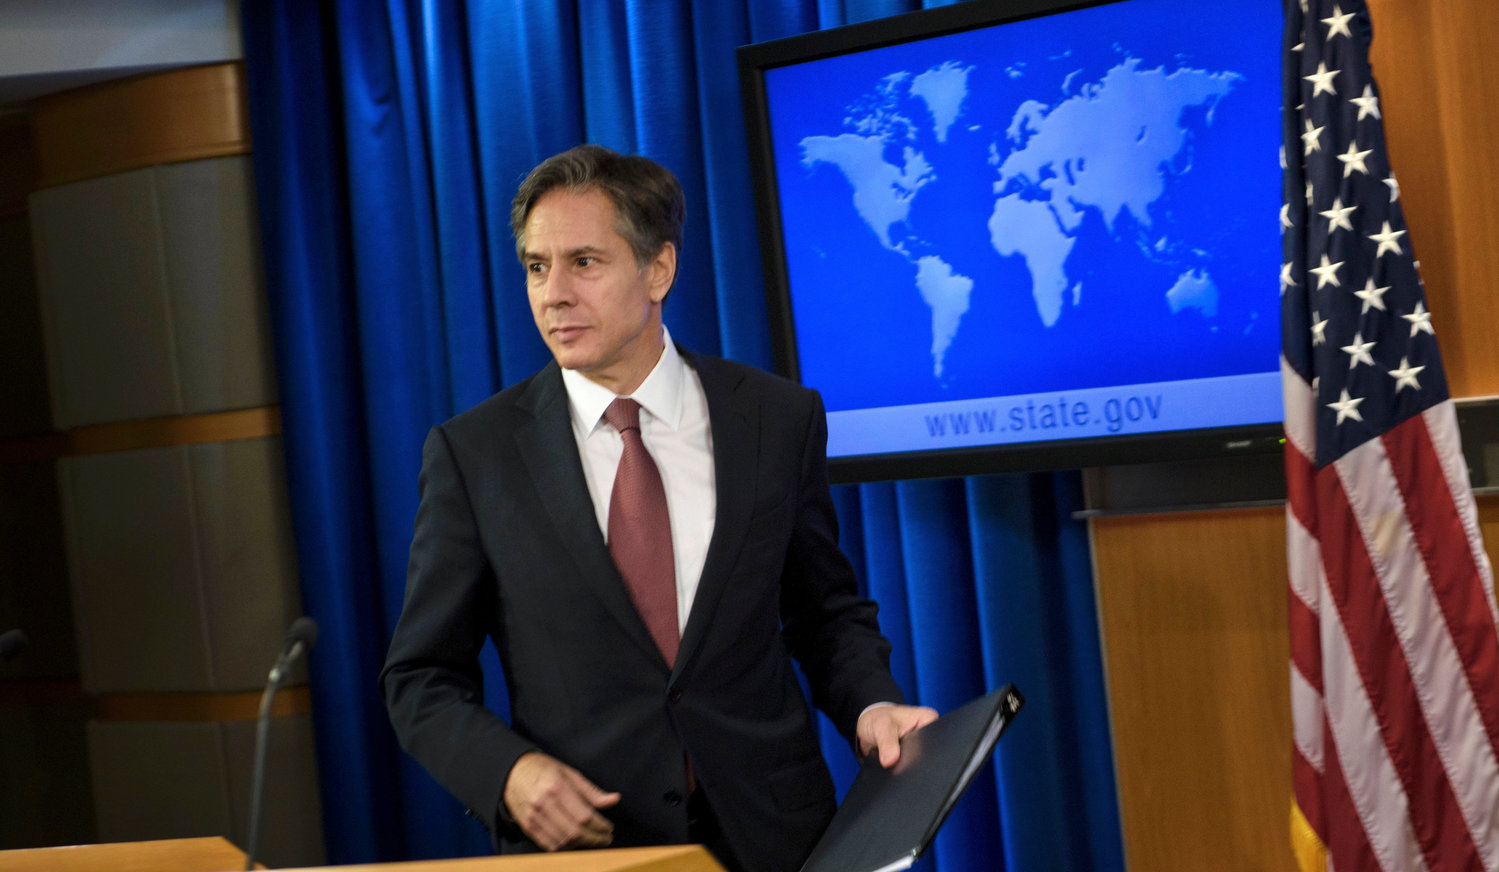 Anthony Blinken, as deputy secretary of state, at a press conference on international religious freedom, at the US Department of State on Aug. 10, 2016.